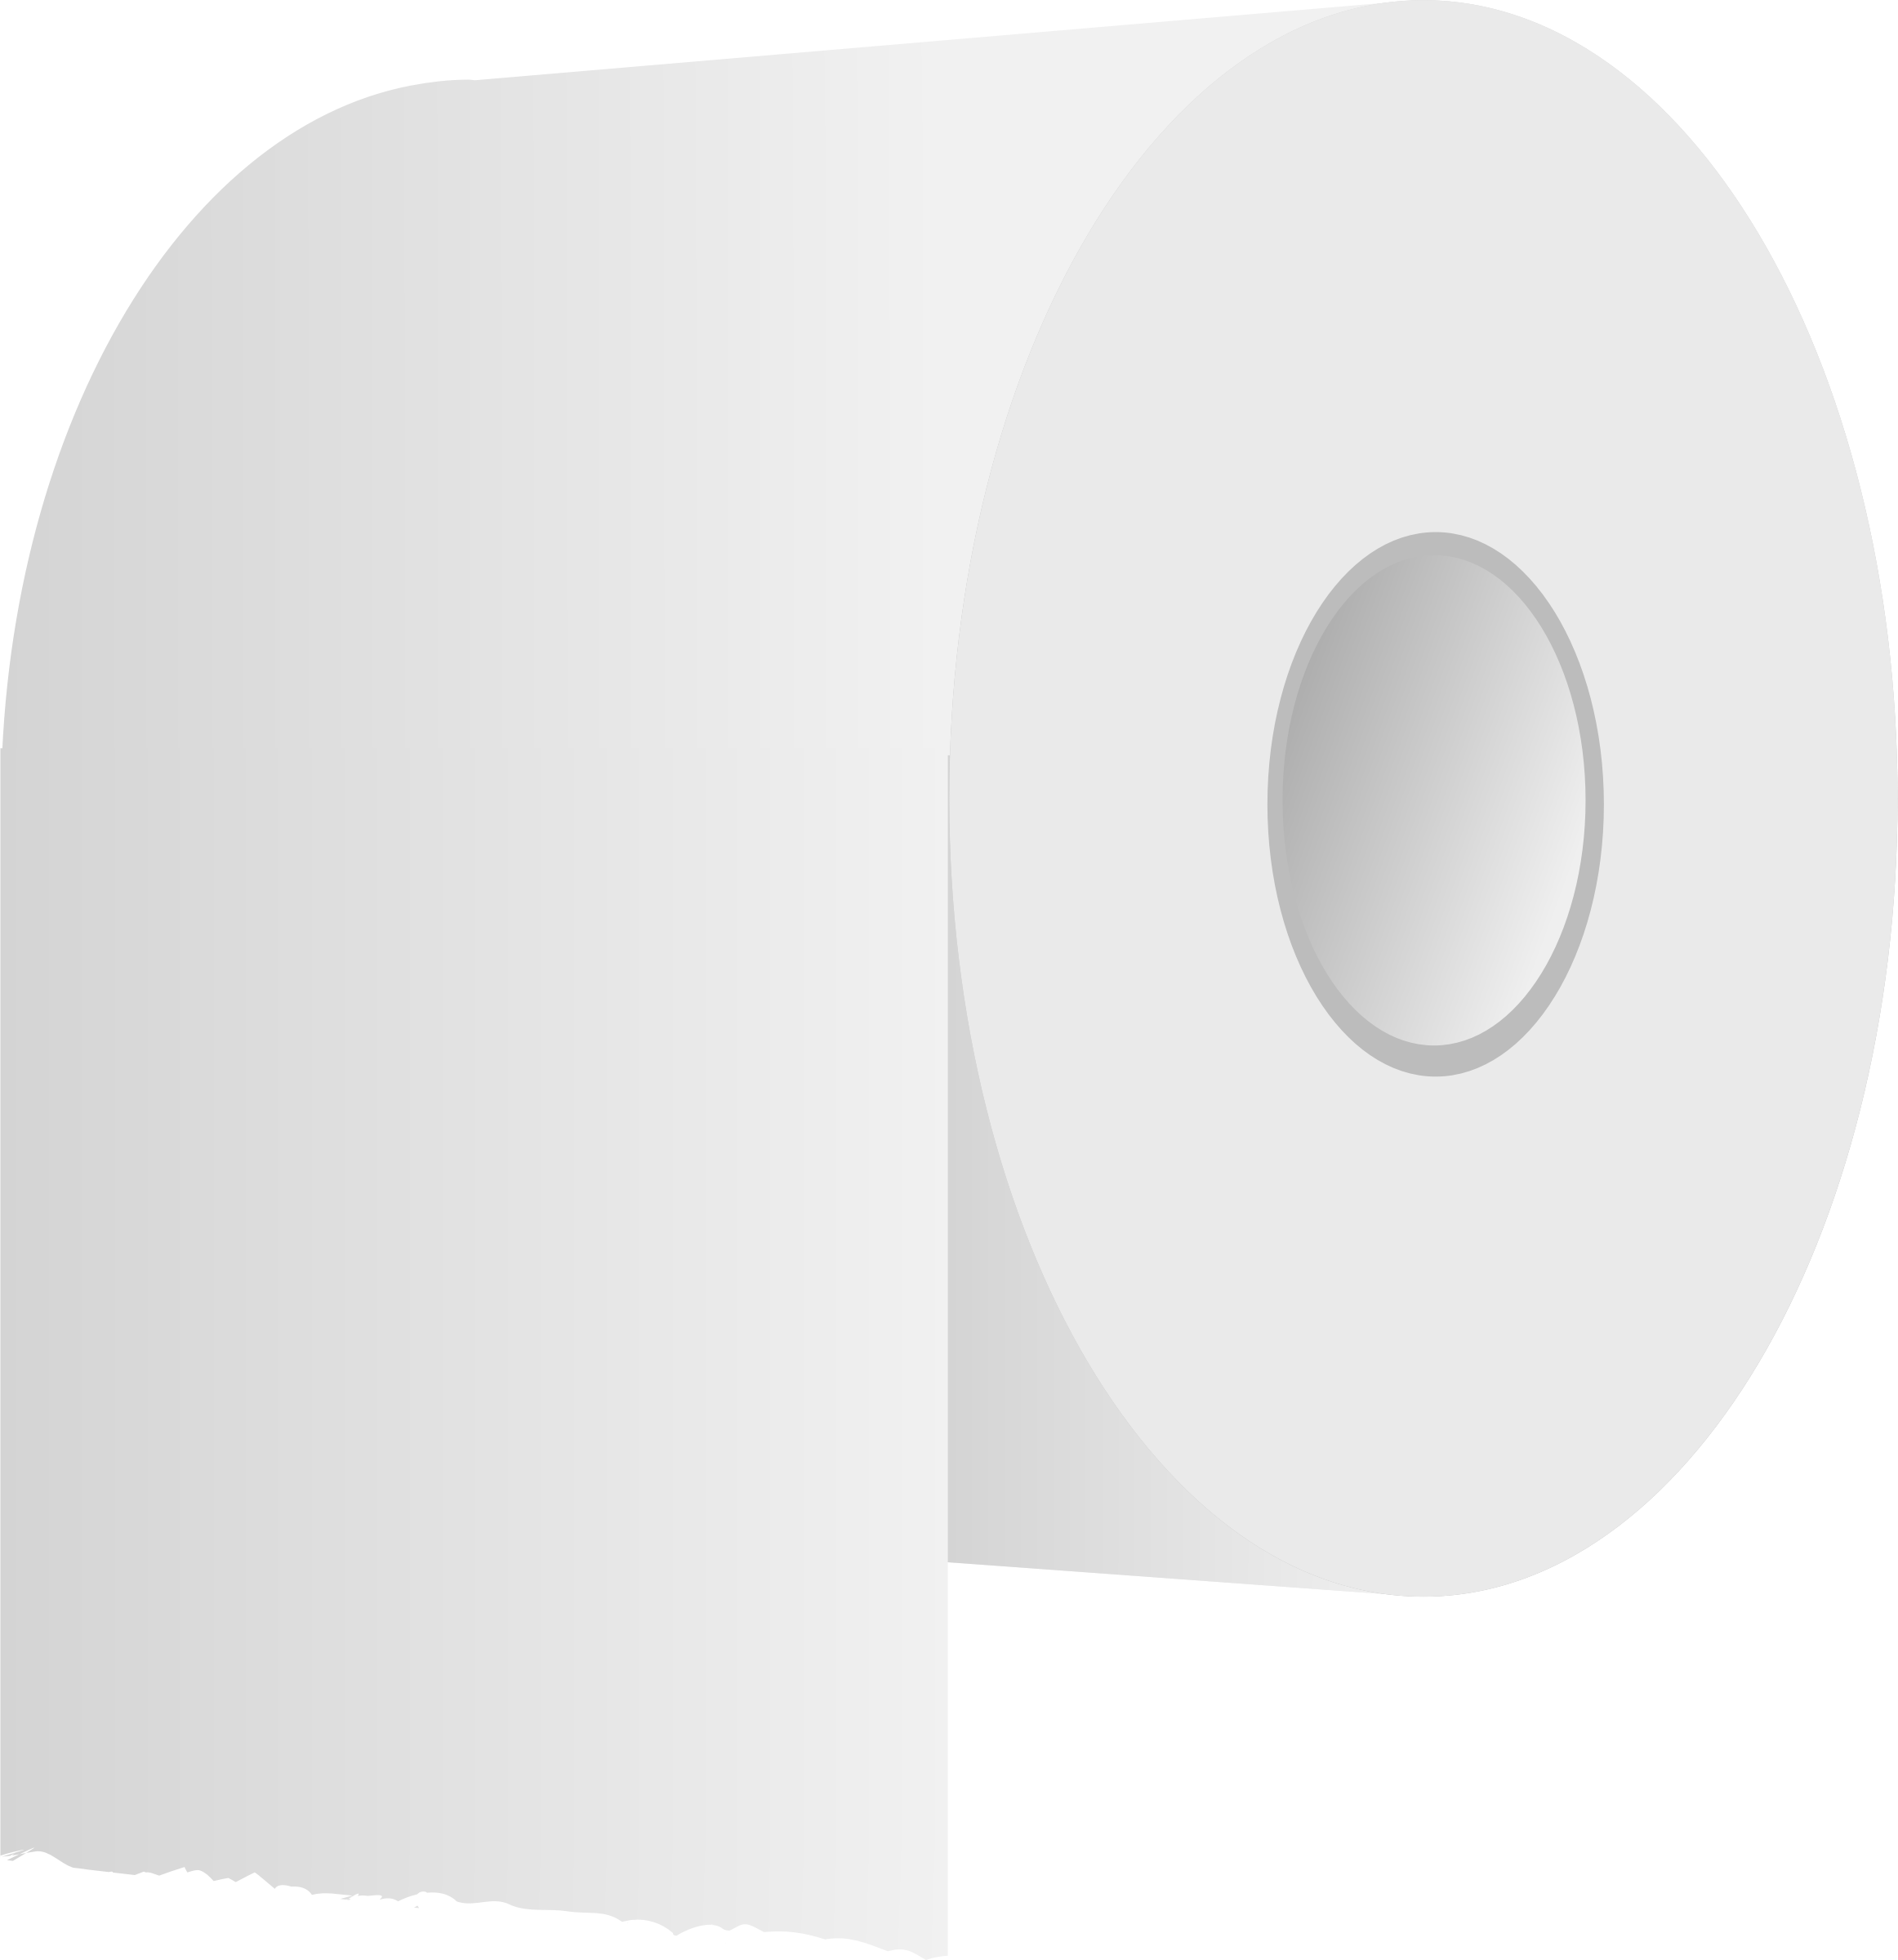 Clipart toilet toilet paper. White roll big image